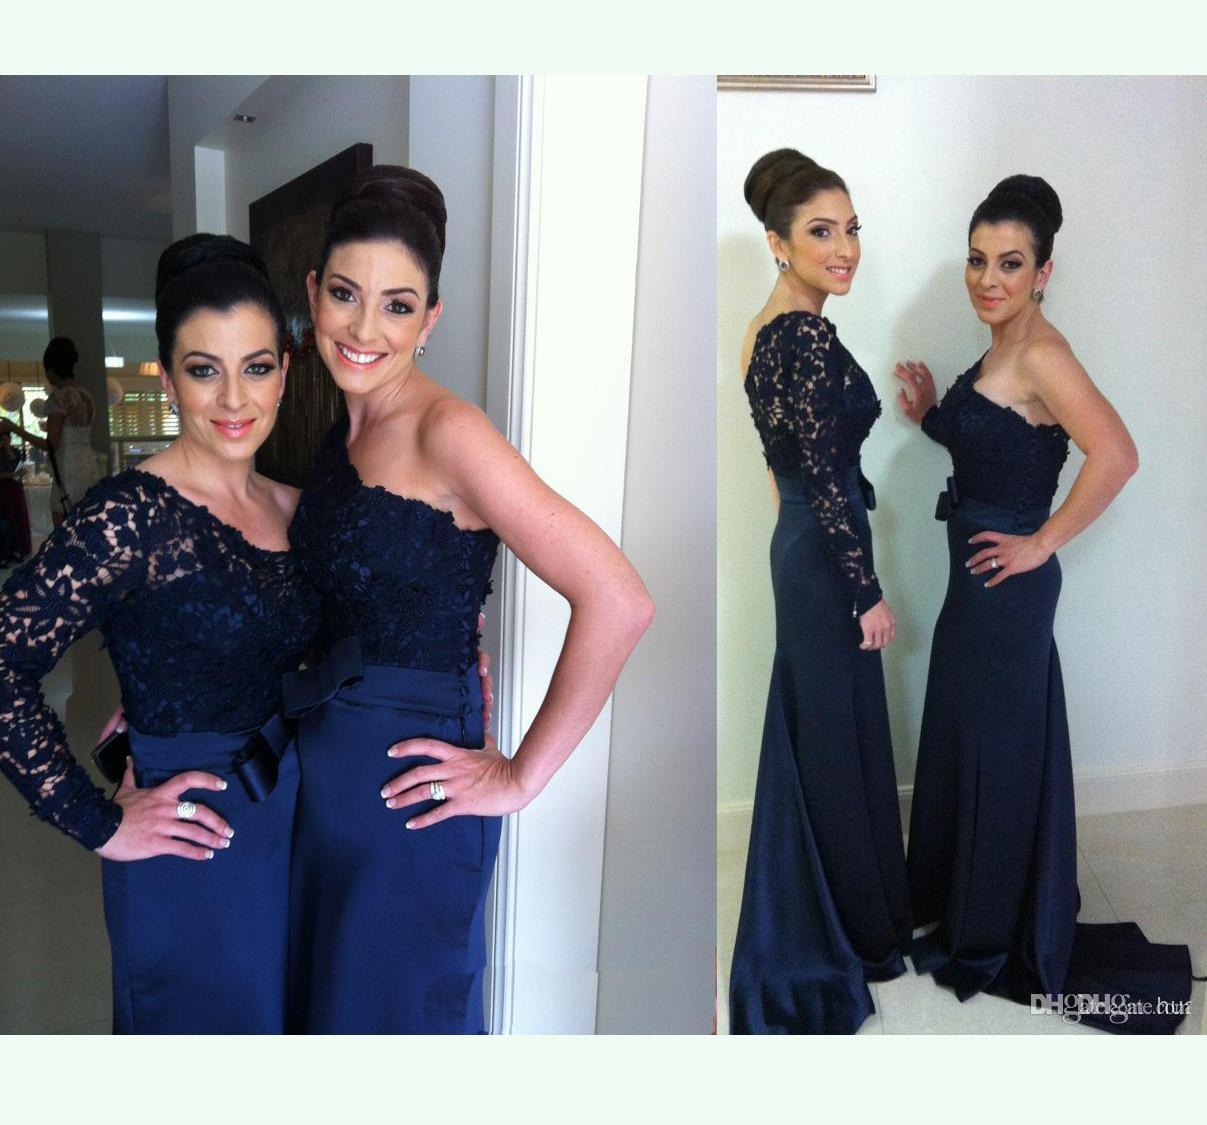 Navy lace bridesmaid dress good dresses 2016 navy lace bridesmaid dresses norma bridal couture mermaid black chiffon evening dresses one shoulder sheer ombrellifo Gallery